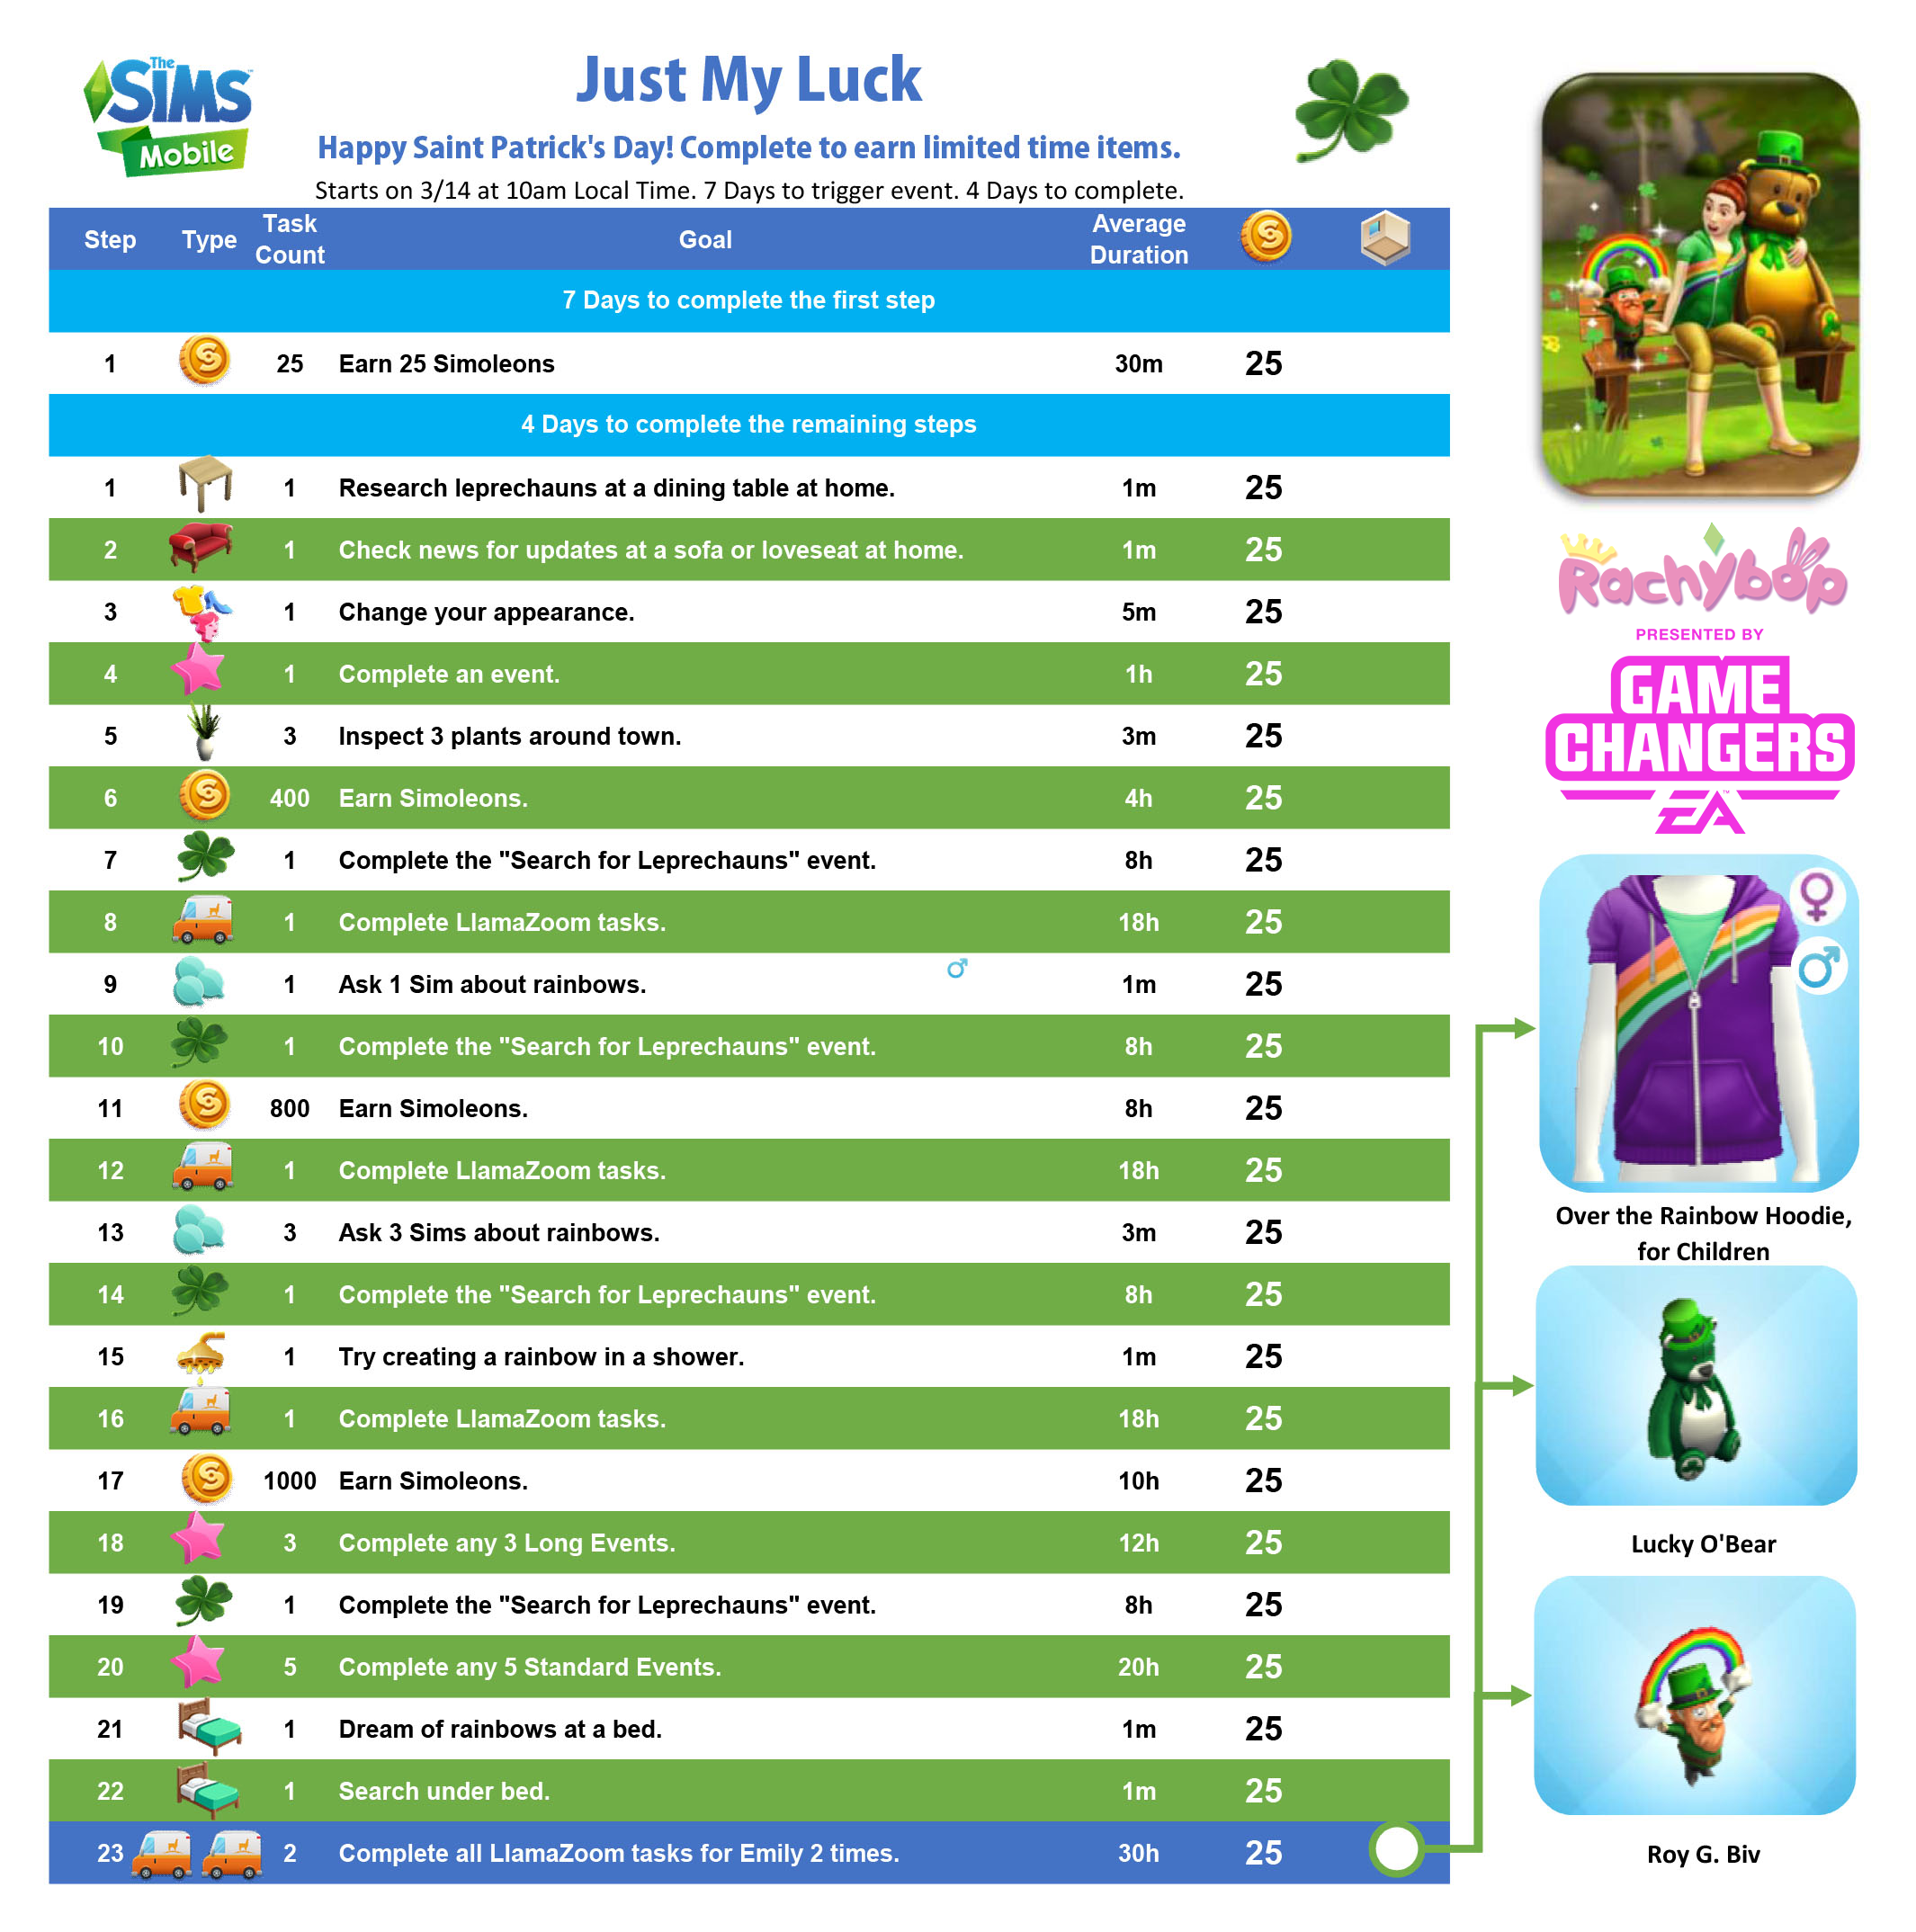 The Sims Mobile Just My Luck QUEST WALKTHROUGH St. Patrick's Day 2019